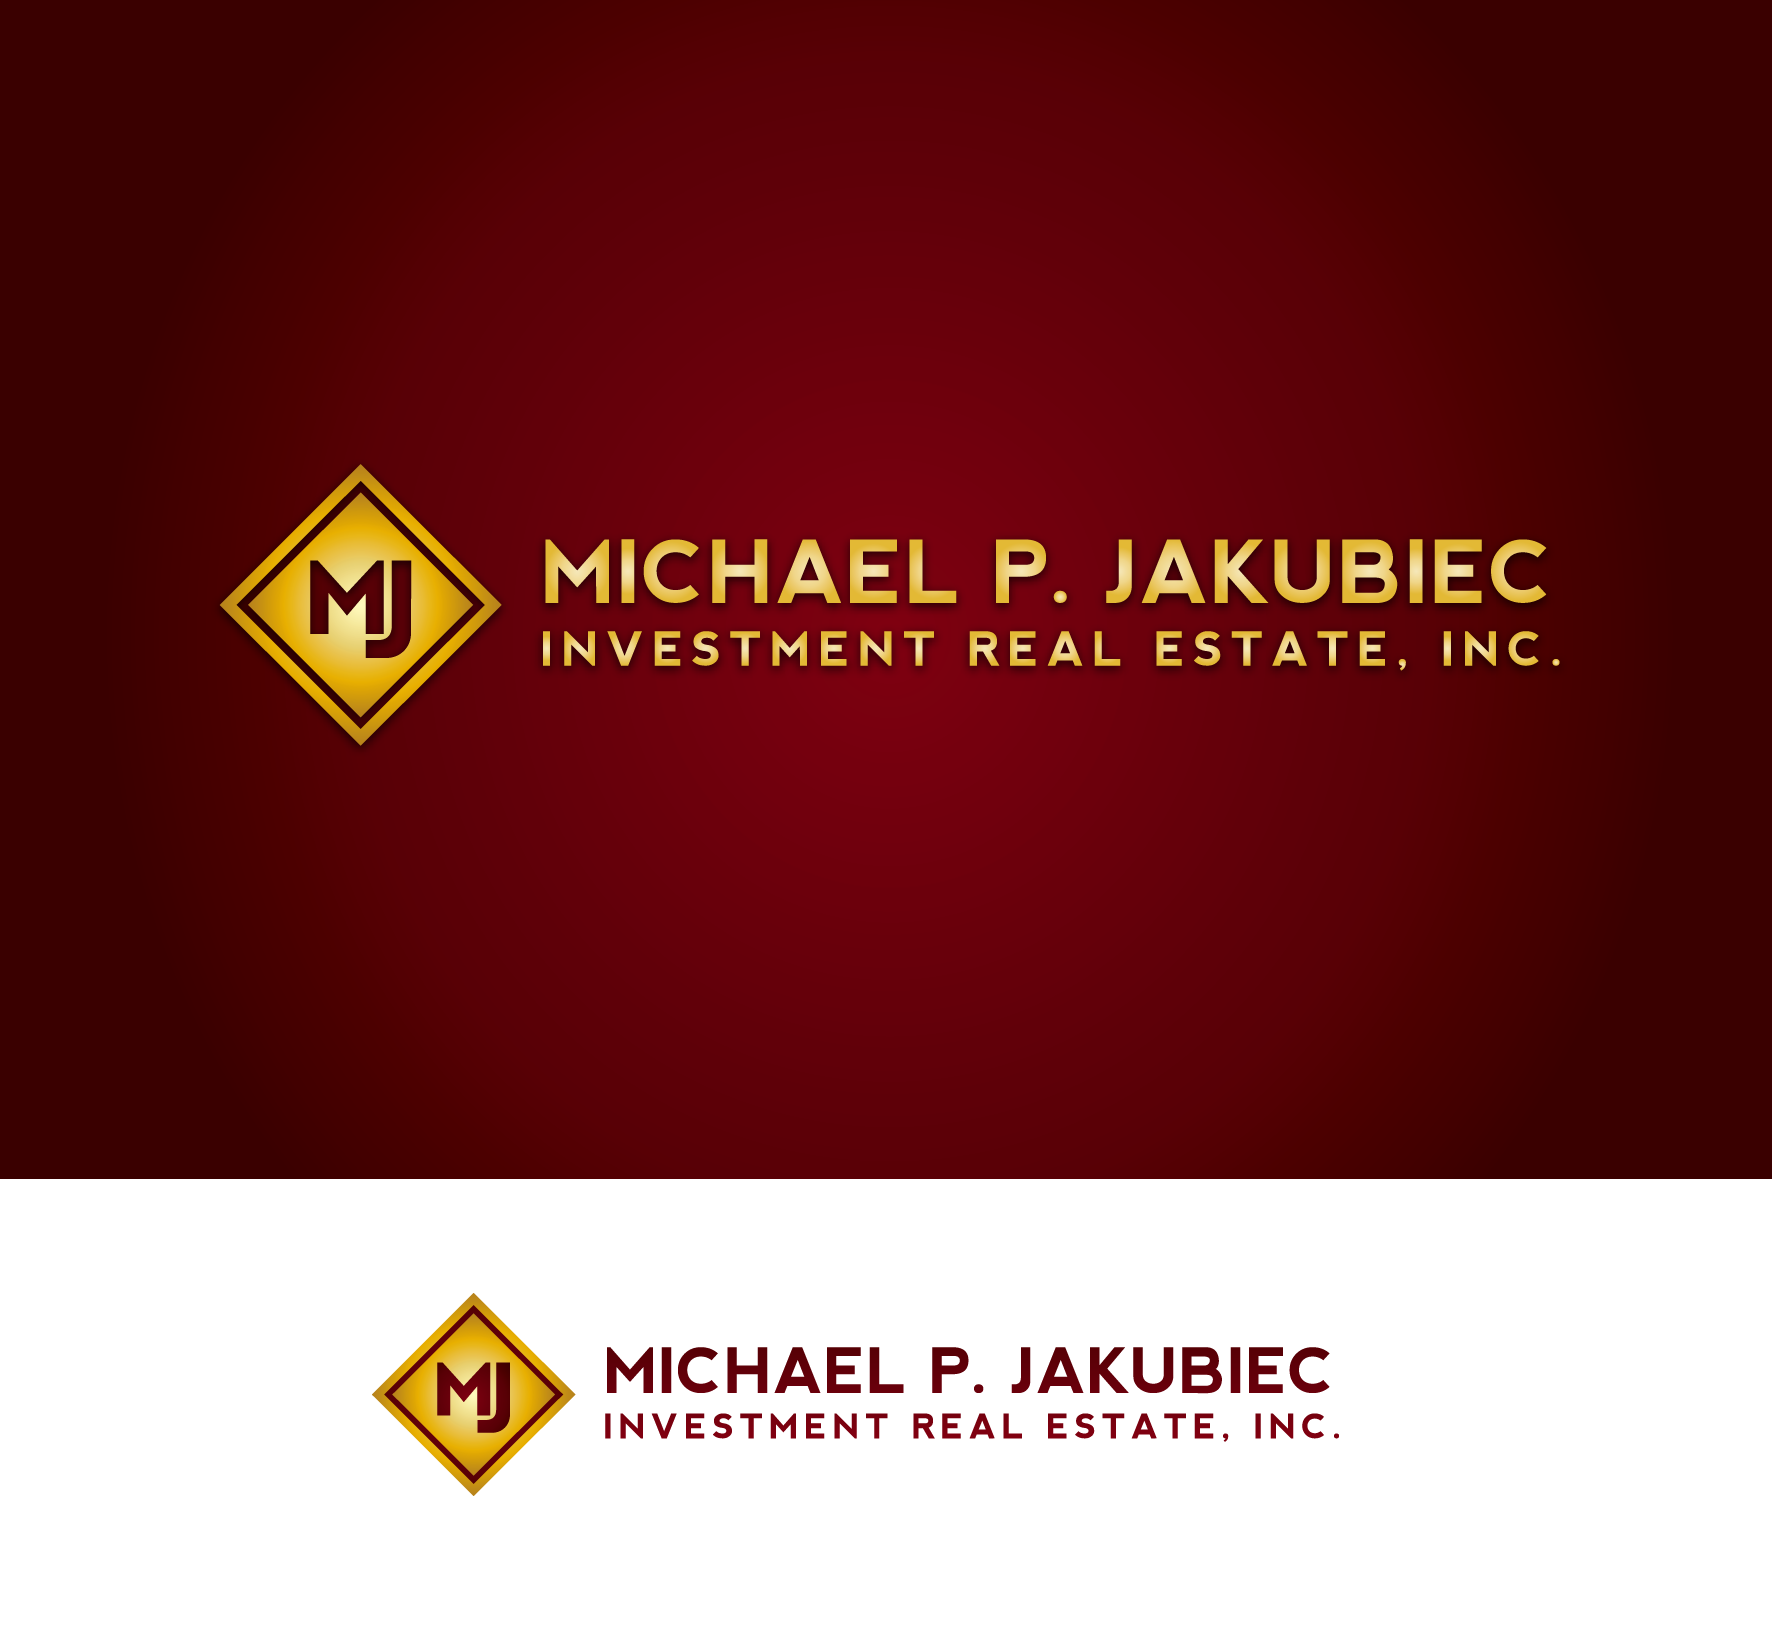 Logo Design by luna - Entry No. 28 in the Logo Design Contest New Logo Design for Michael P. Jakubiec Investment Real Estate, Inc..